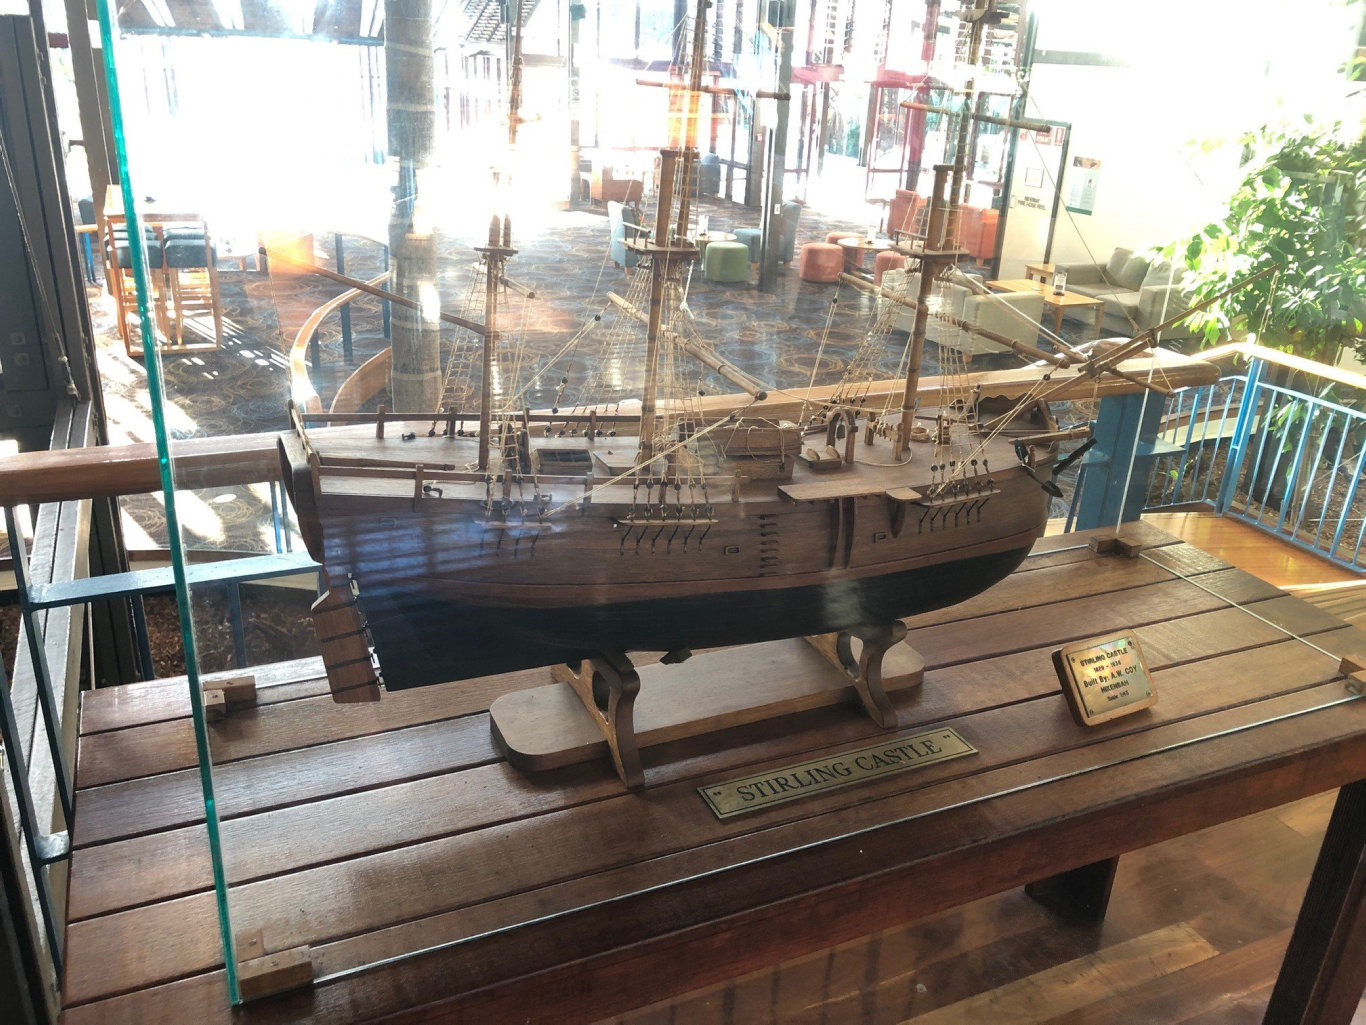 A model of Stirling Castle, one of the famous shipwrecks off the coast of Fraser Island.